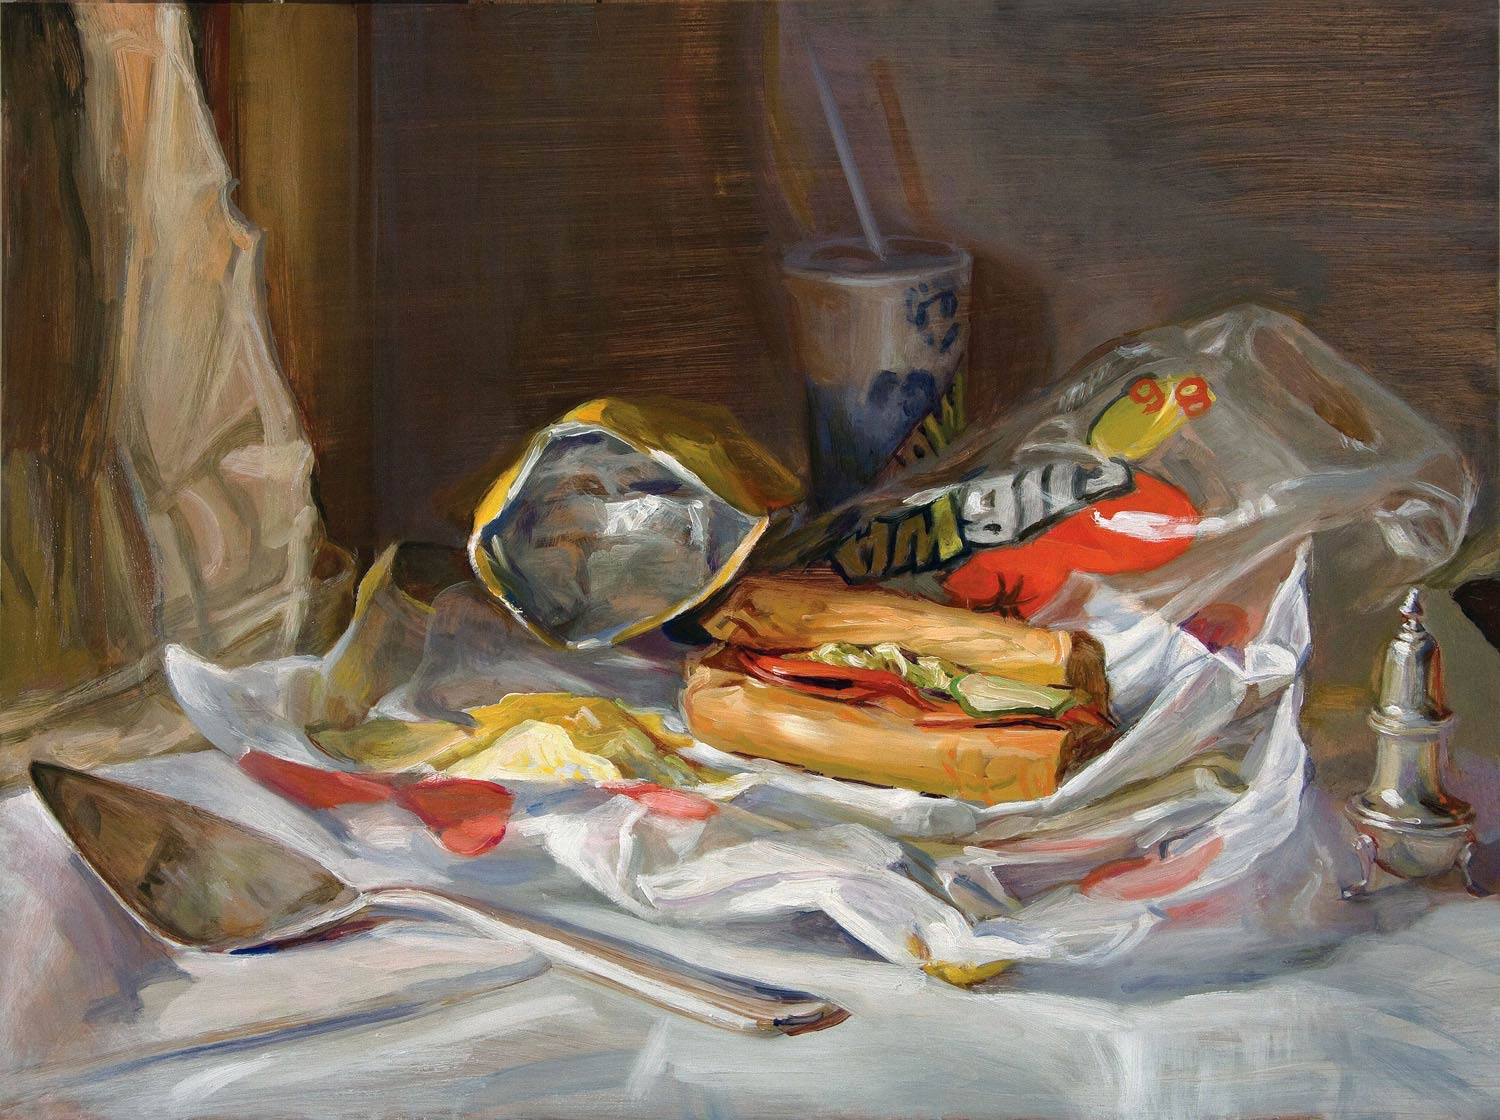 Subway 18 x 24 in oil on copper 2009